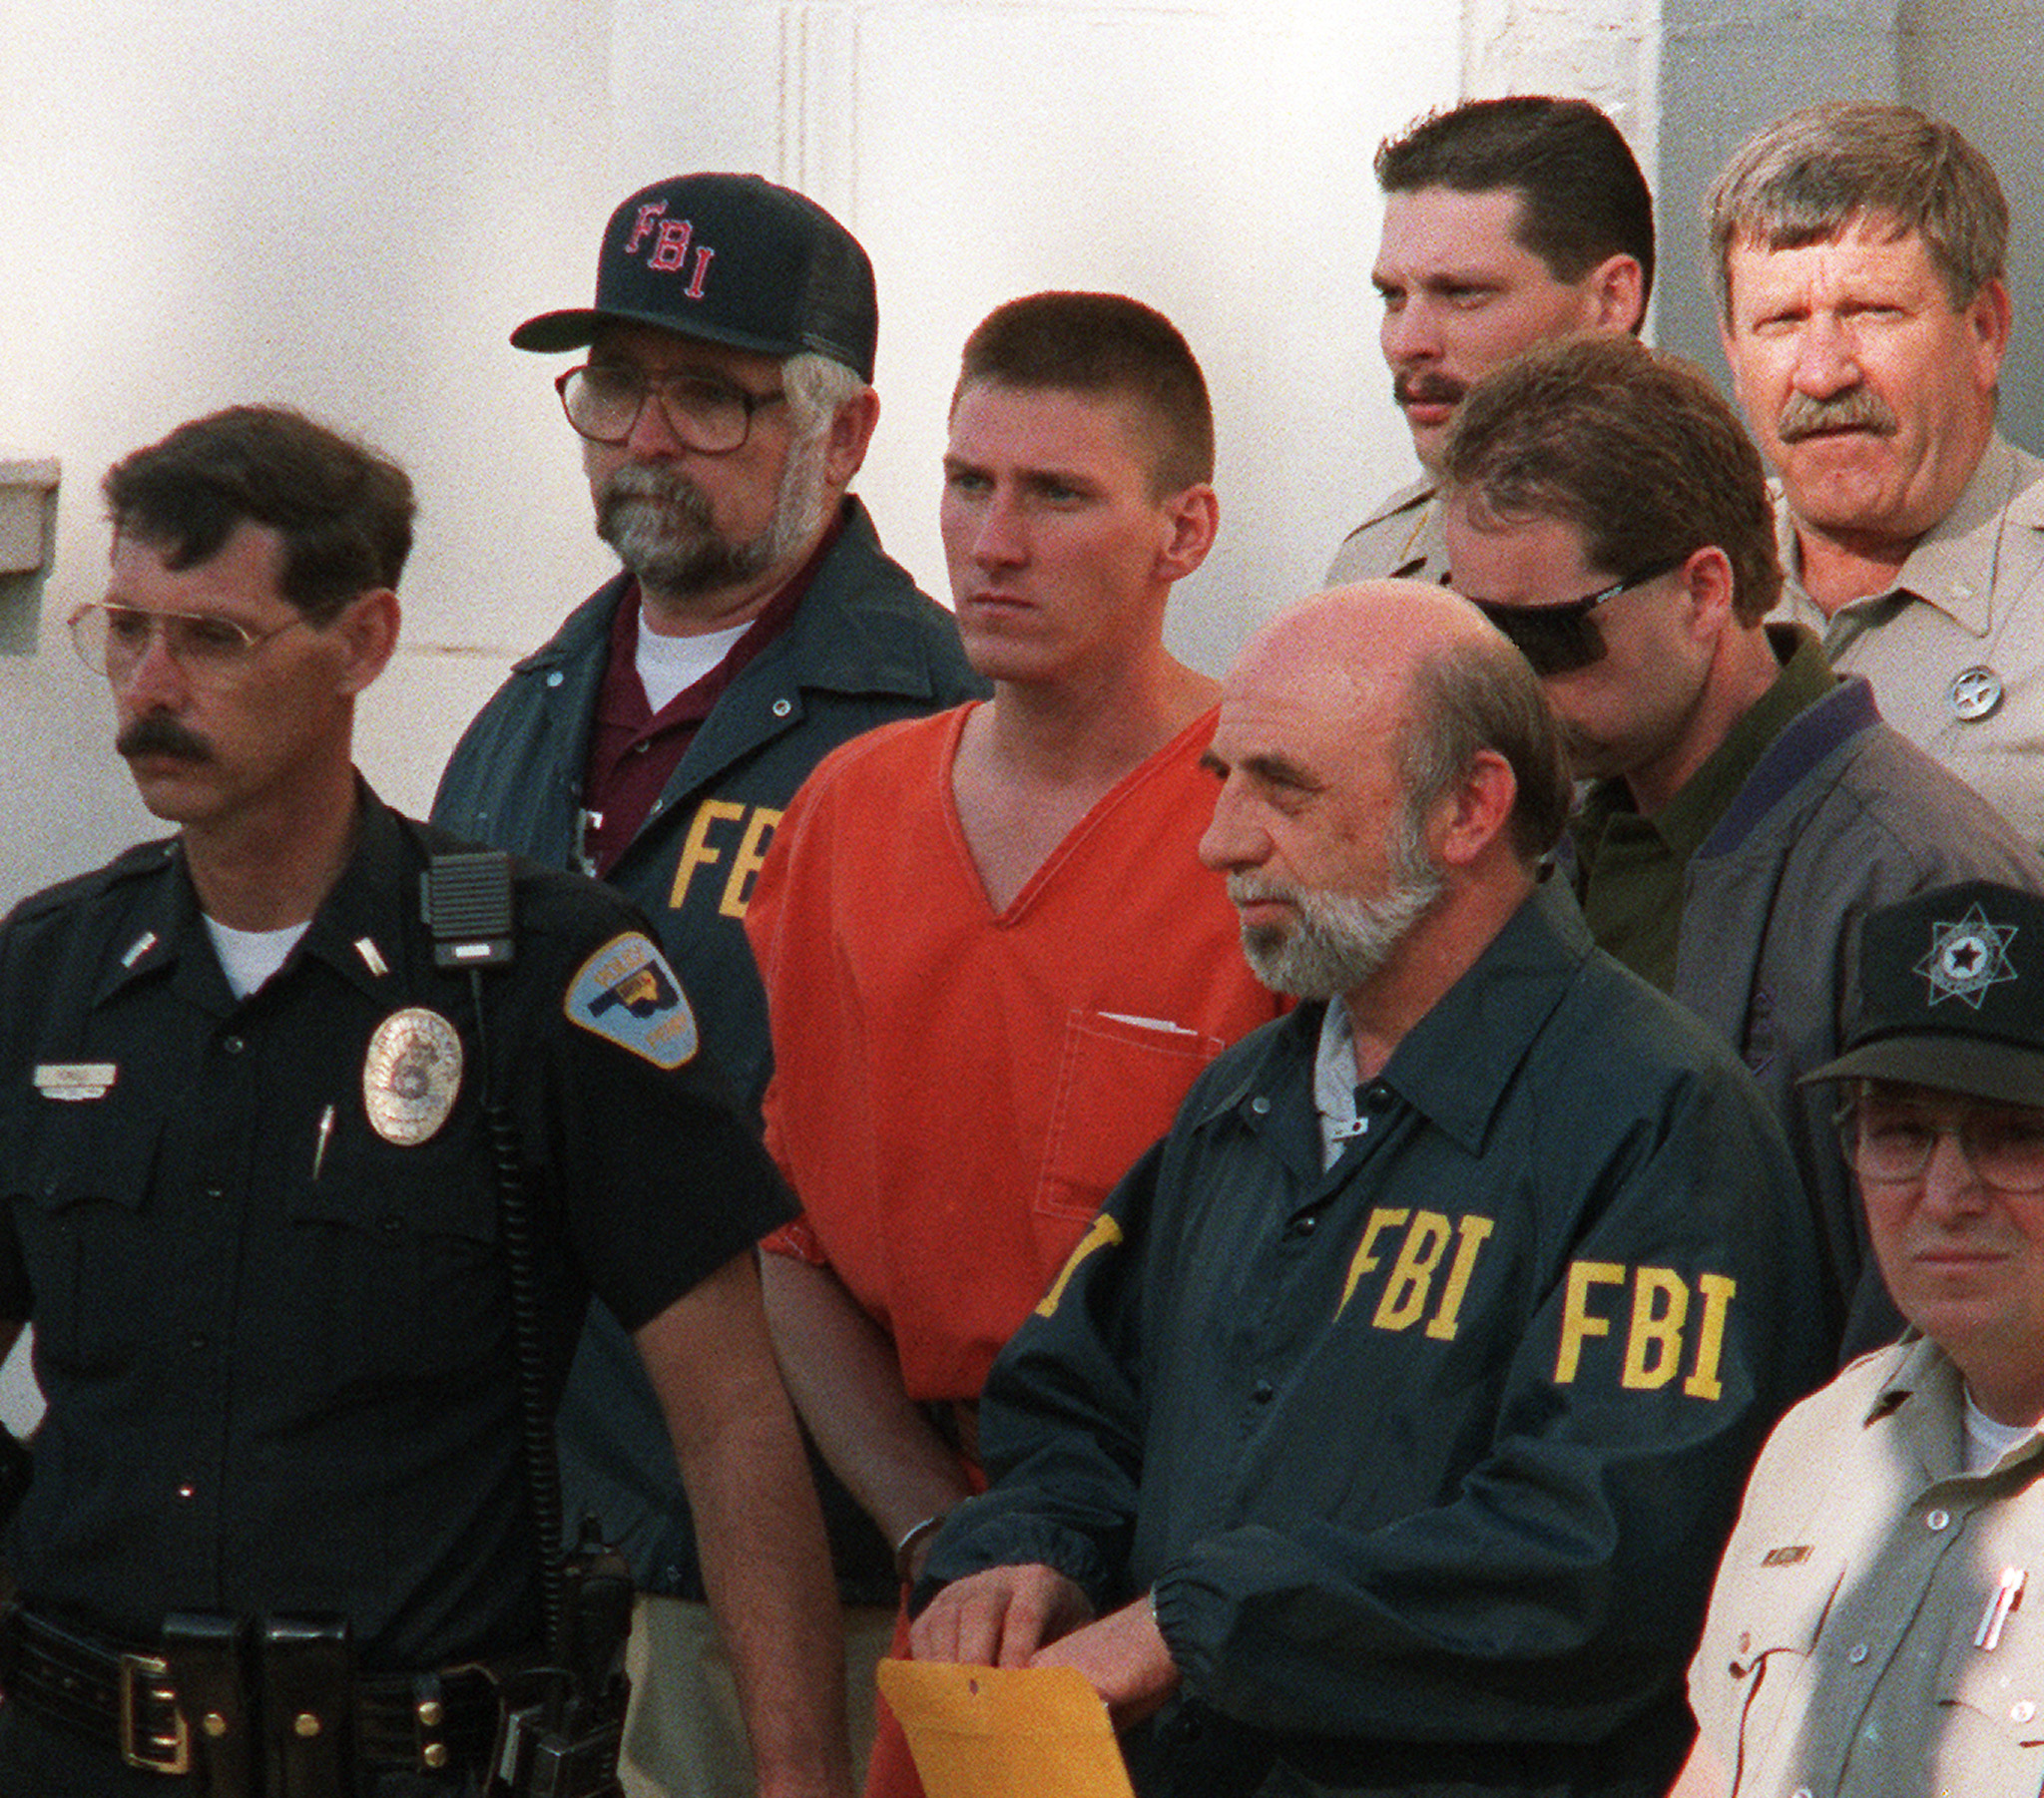 Timothy McVeigh, 27, (C) is led 21 April 1995 from